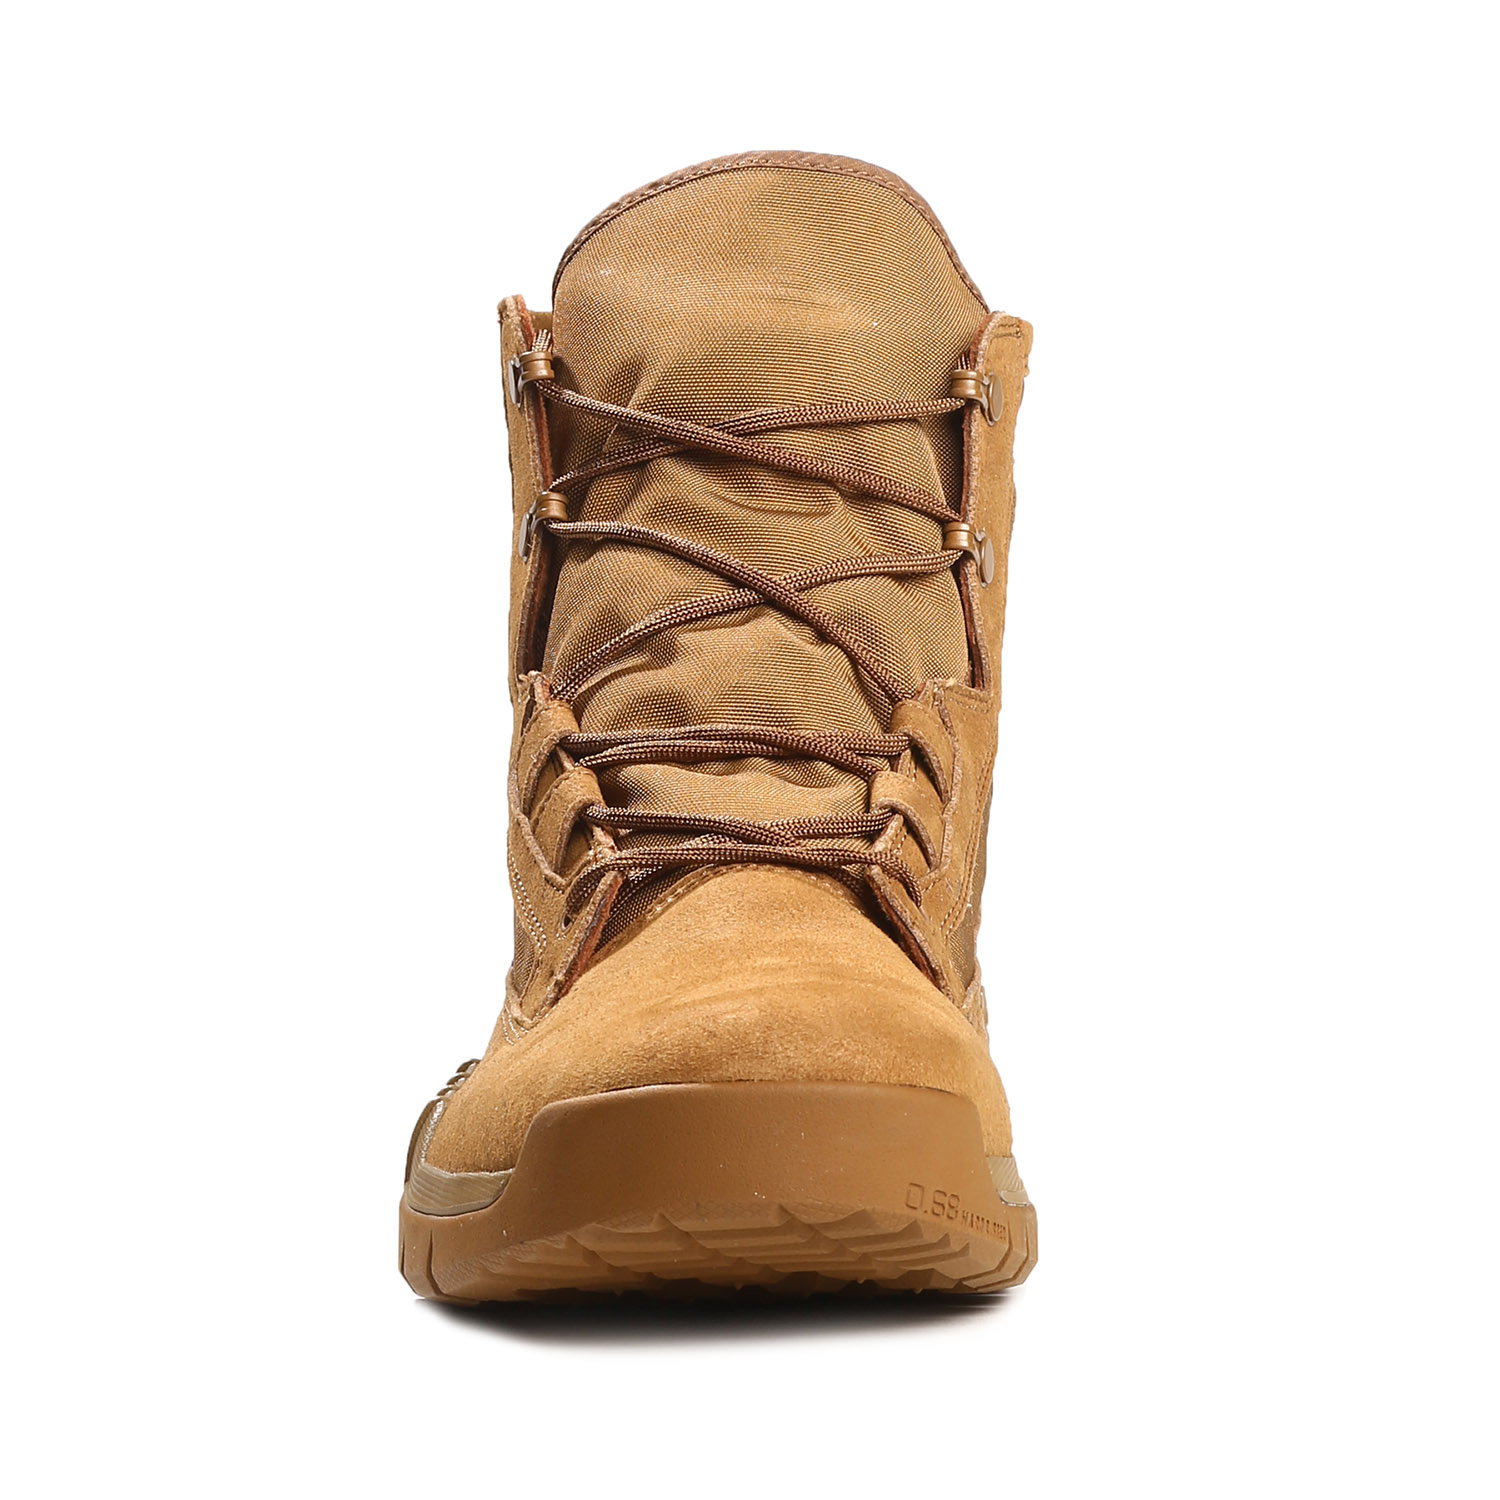 Men's Boots | Foot Locker